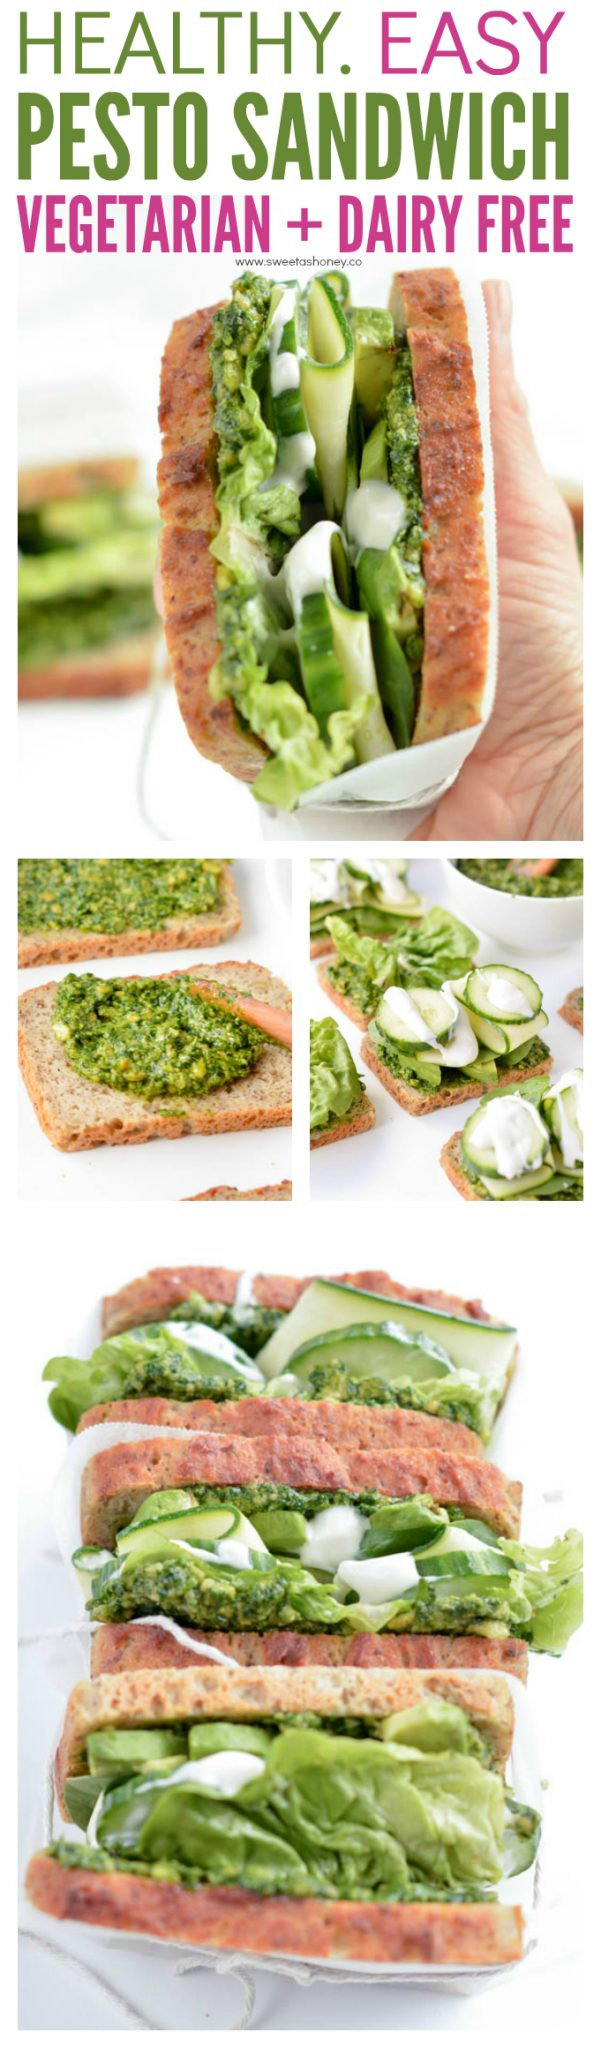 Healthy Vegetarian pesto sandwich. A green goddess paleo sandwich made with homemade paleo cashew pesto - dairy free- avocado, spinach, cucumber and zucchini and a drizzle of coconut oil mayonnaise